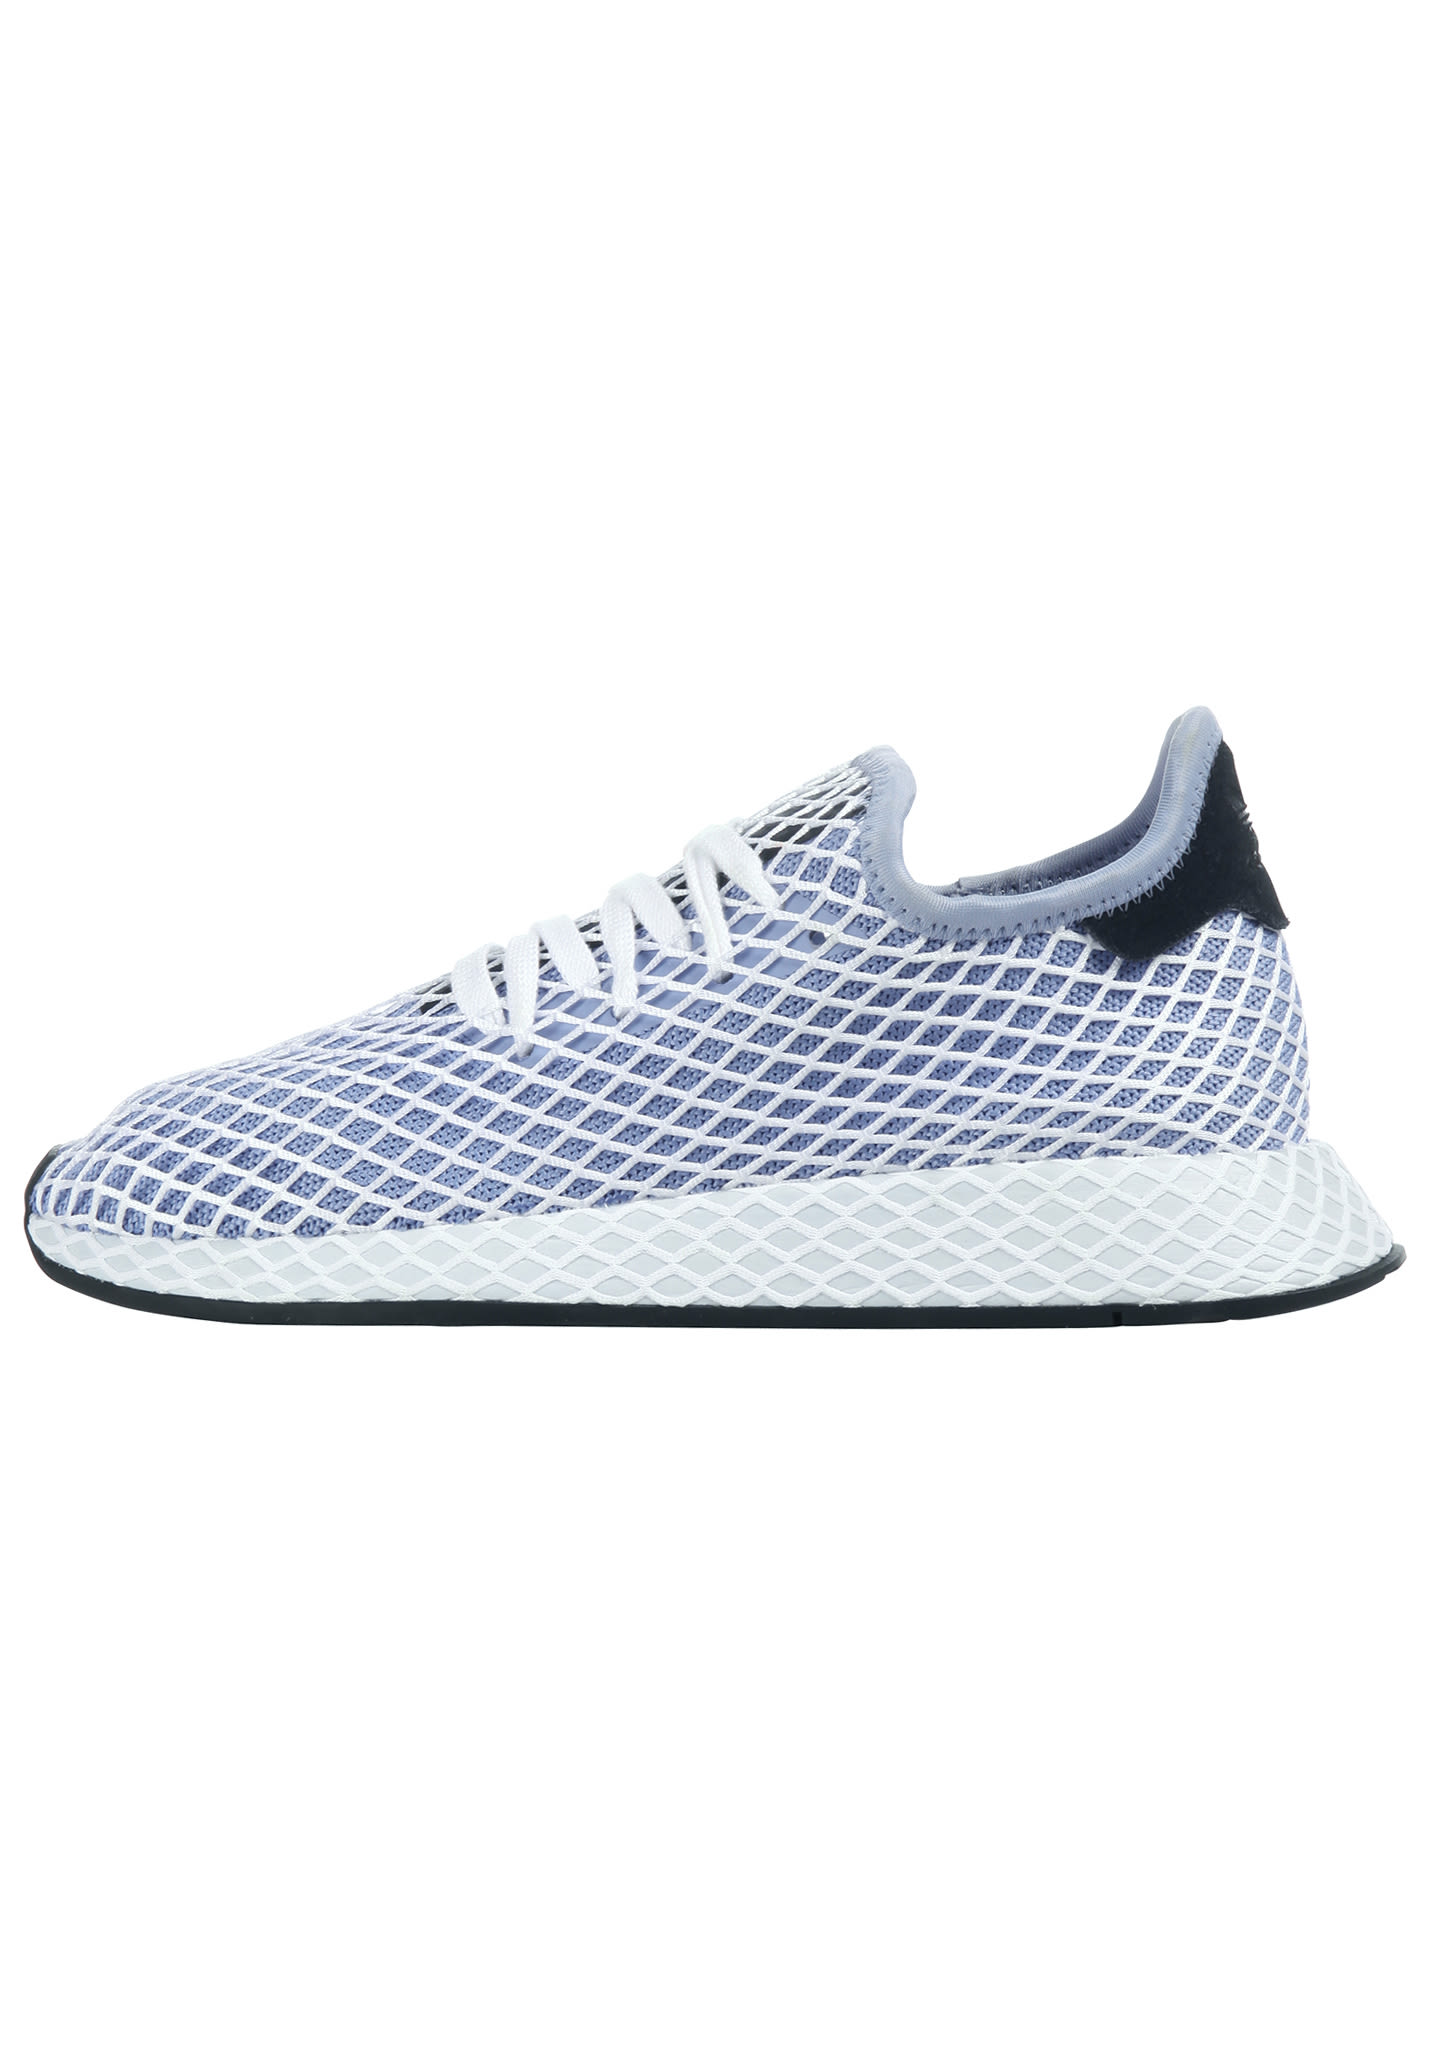 3237ecfb2fa147 adidas Originals Deerupt Runner - Sneaker für Damen - Blau - Planet Sports